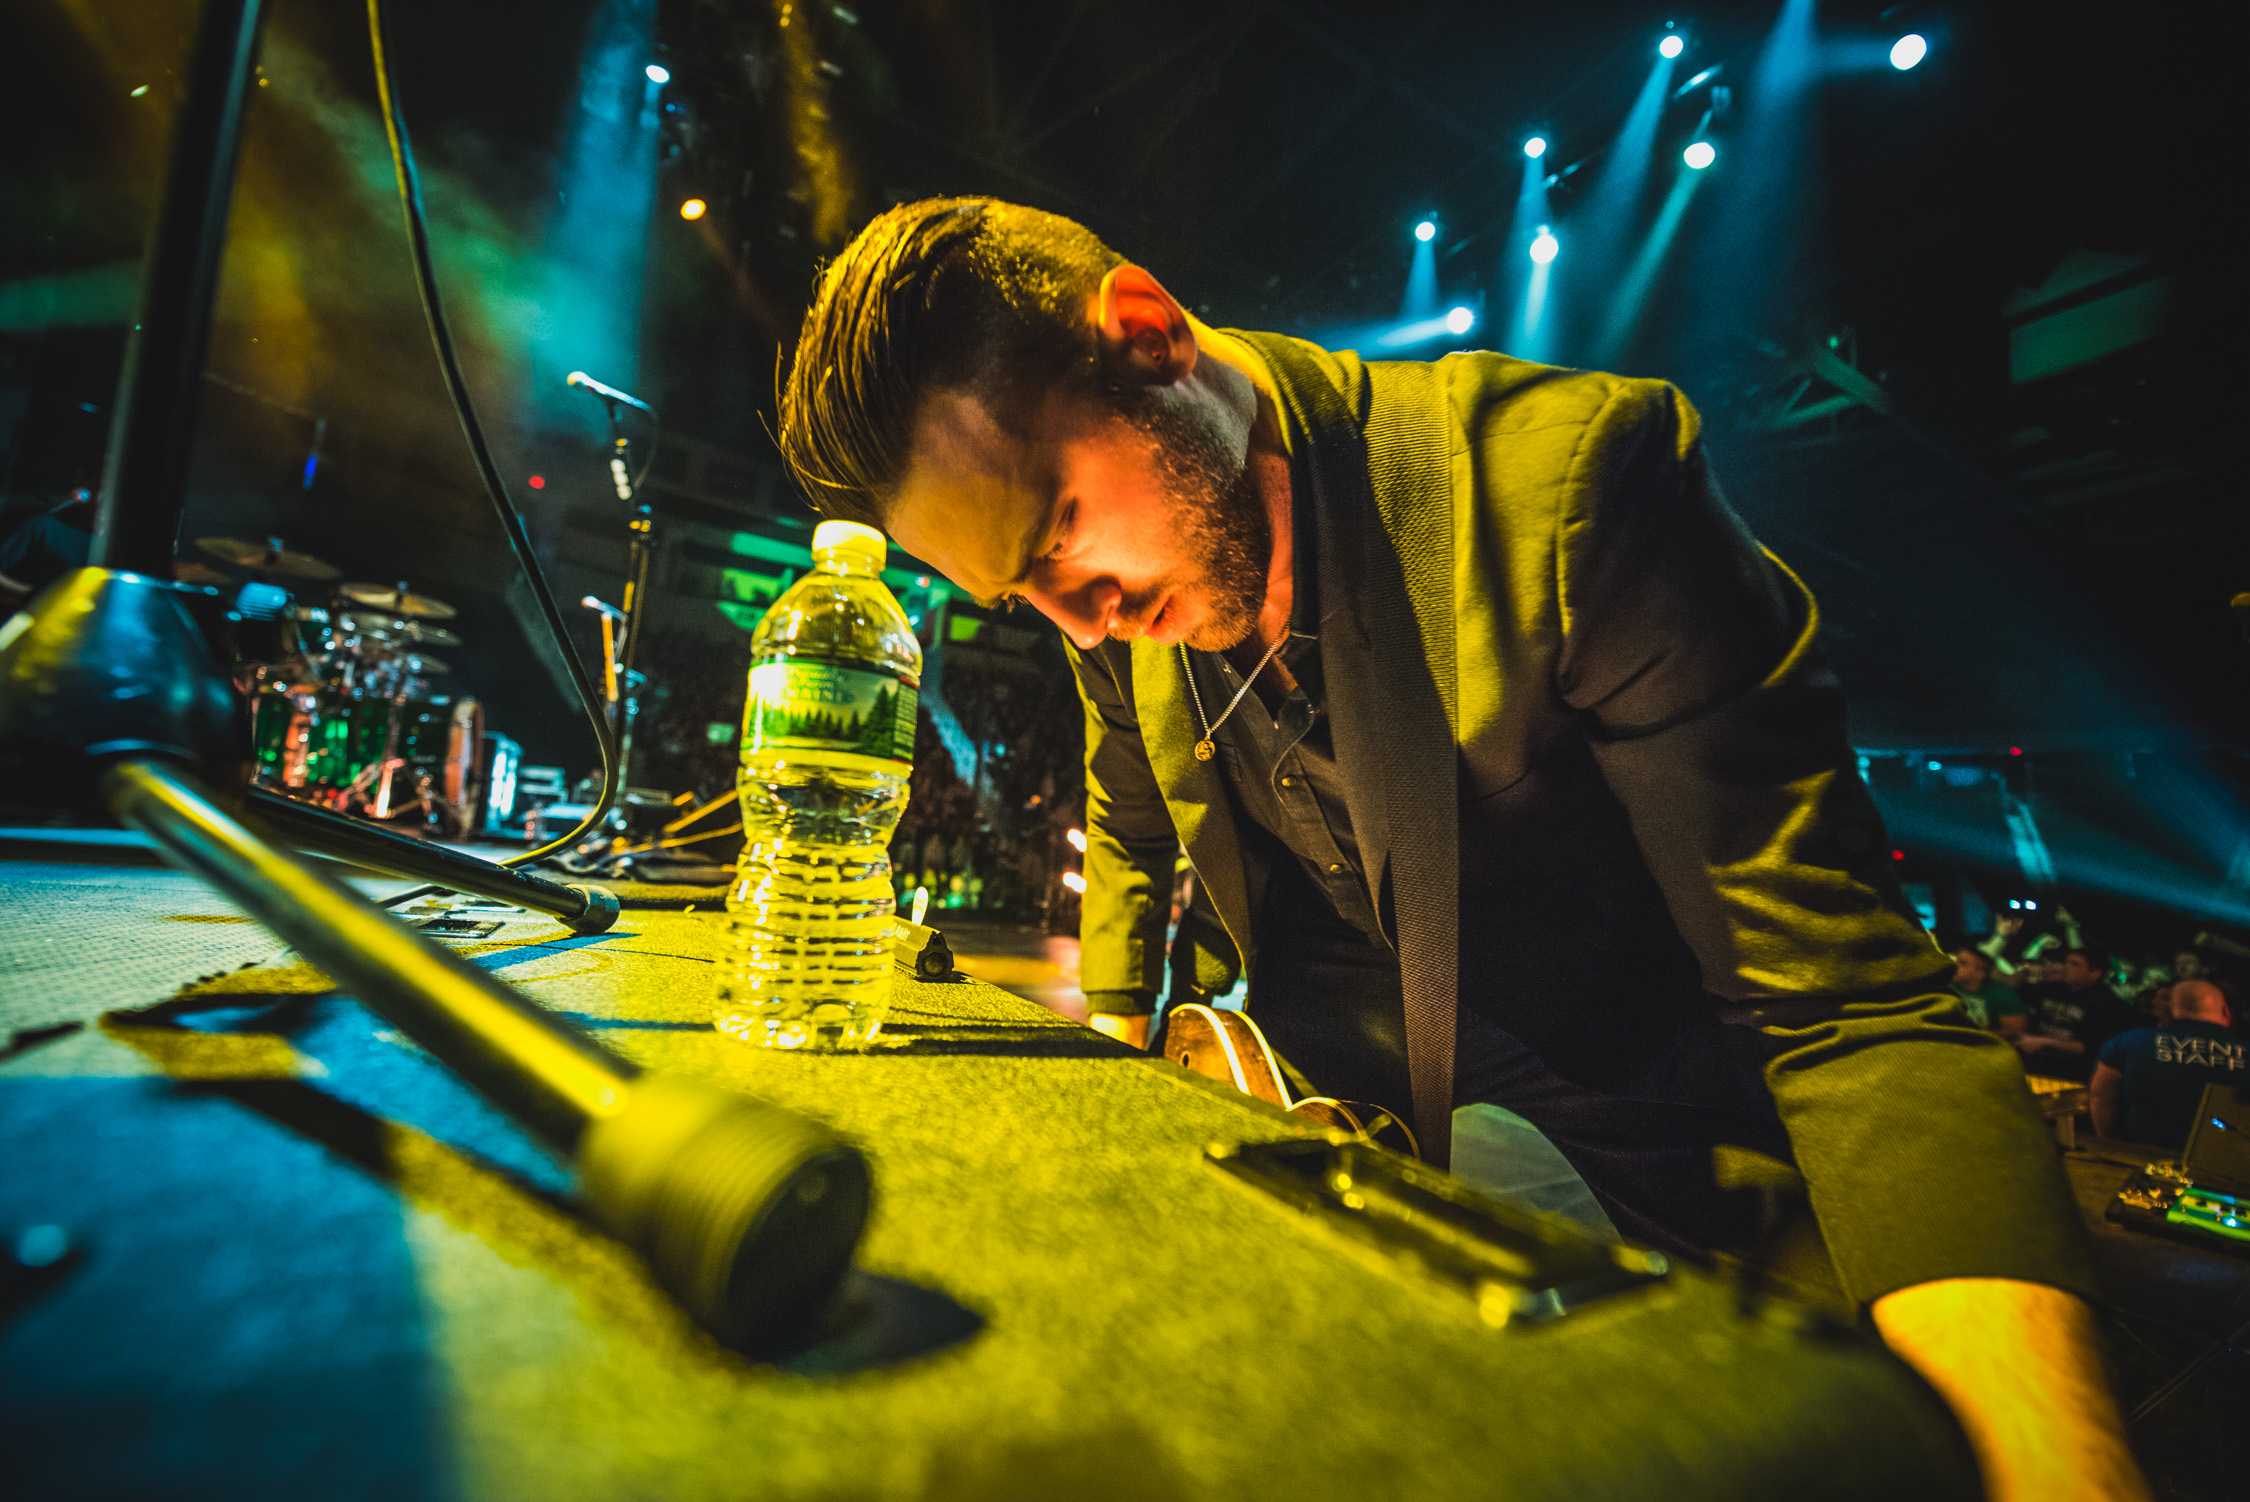 Dropkick Murphys Aegis Arena Boston Gregory Nolan 04.19.16 -73.jpg